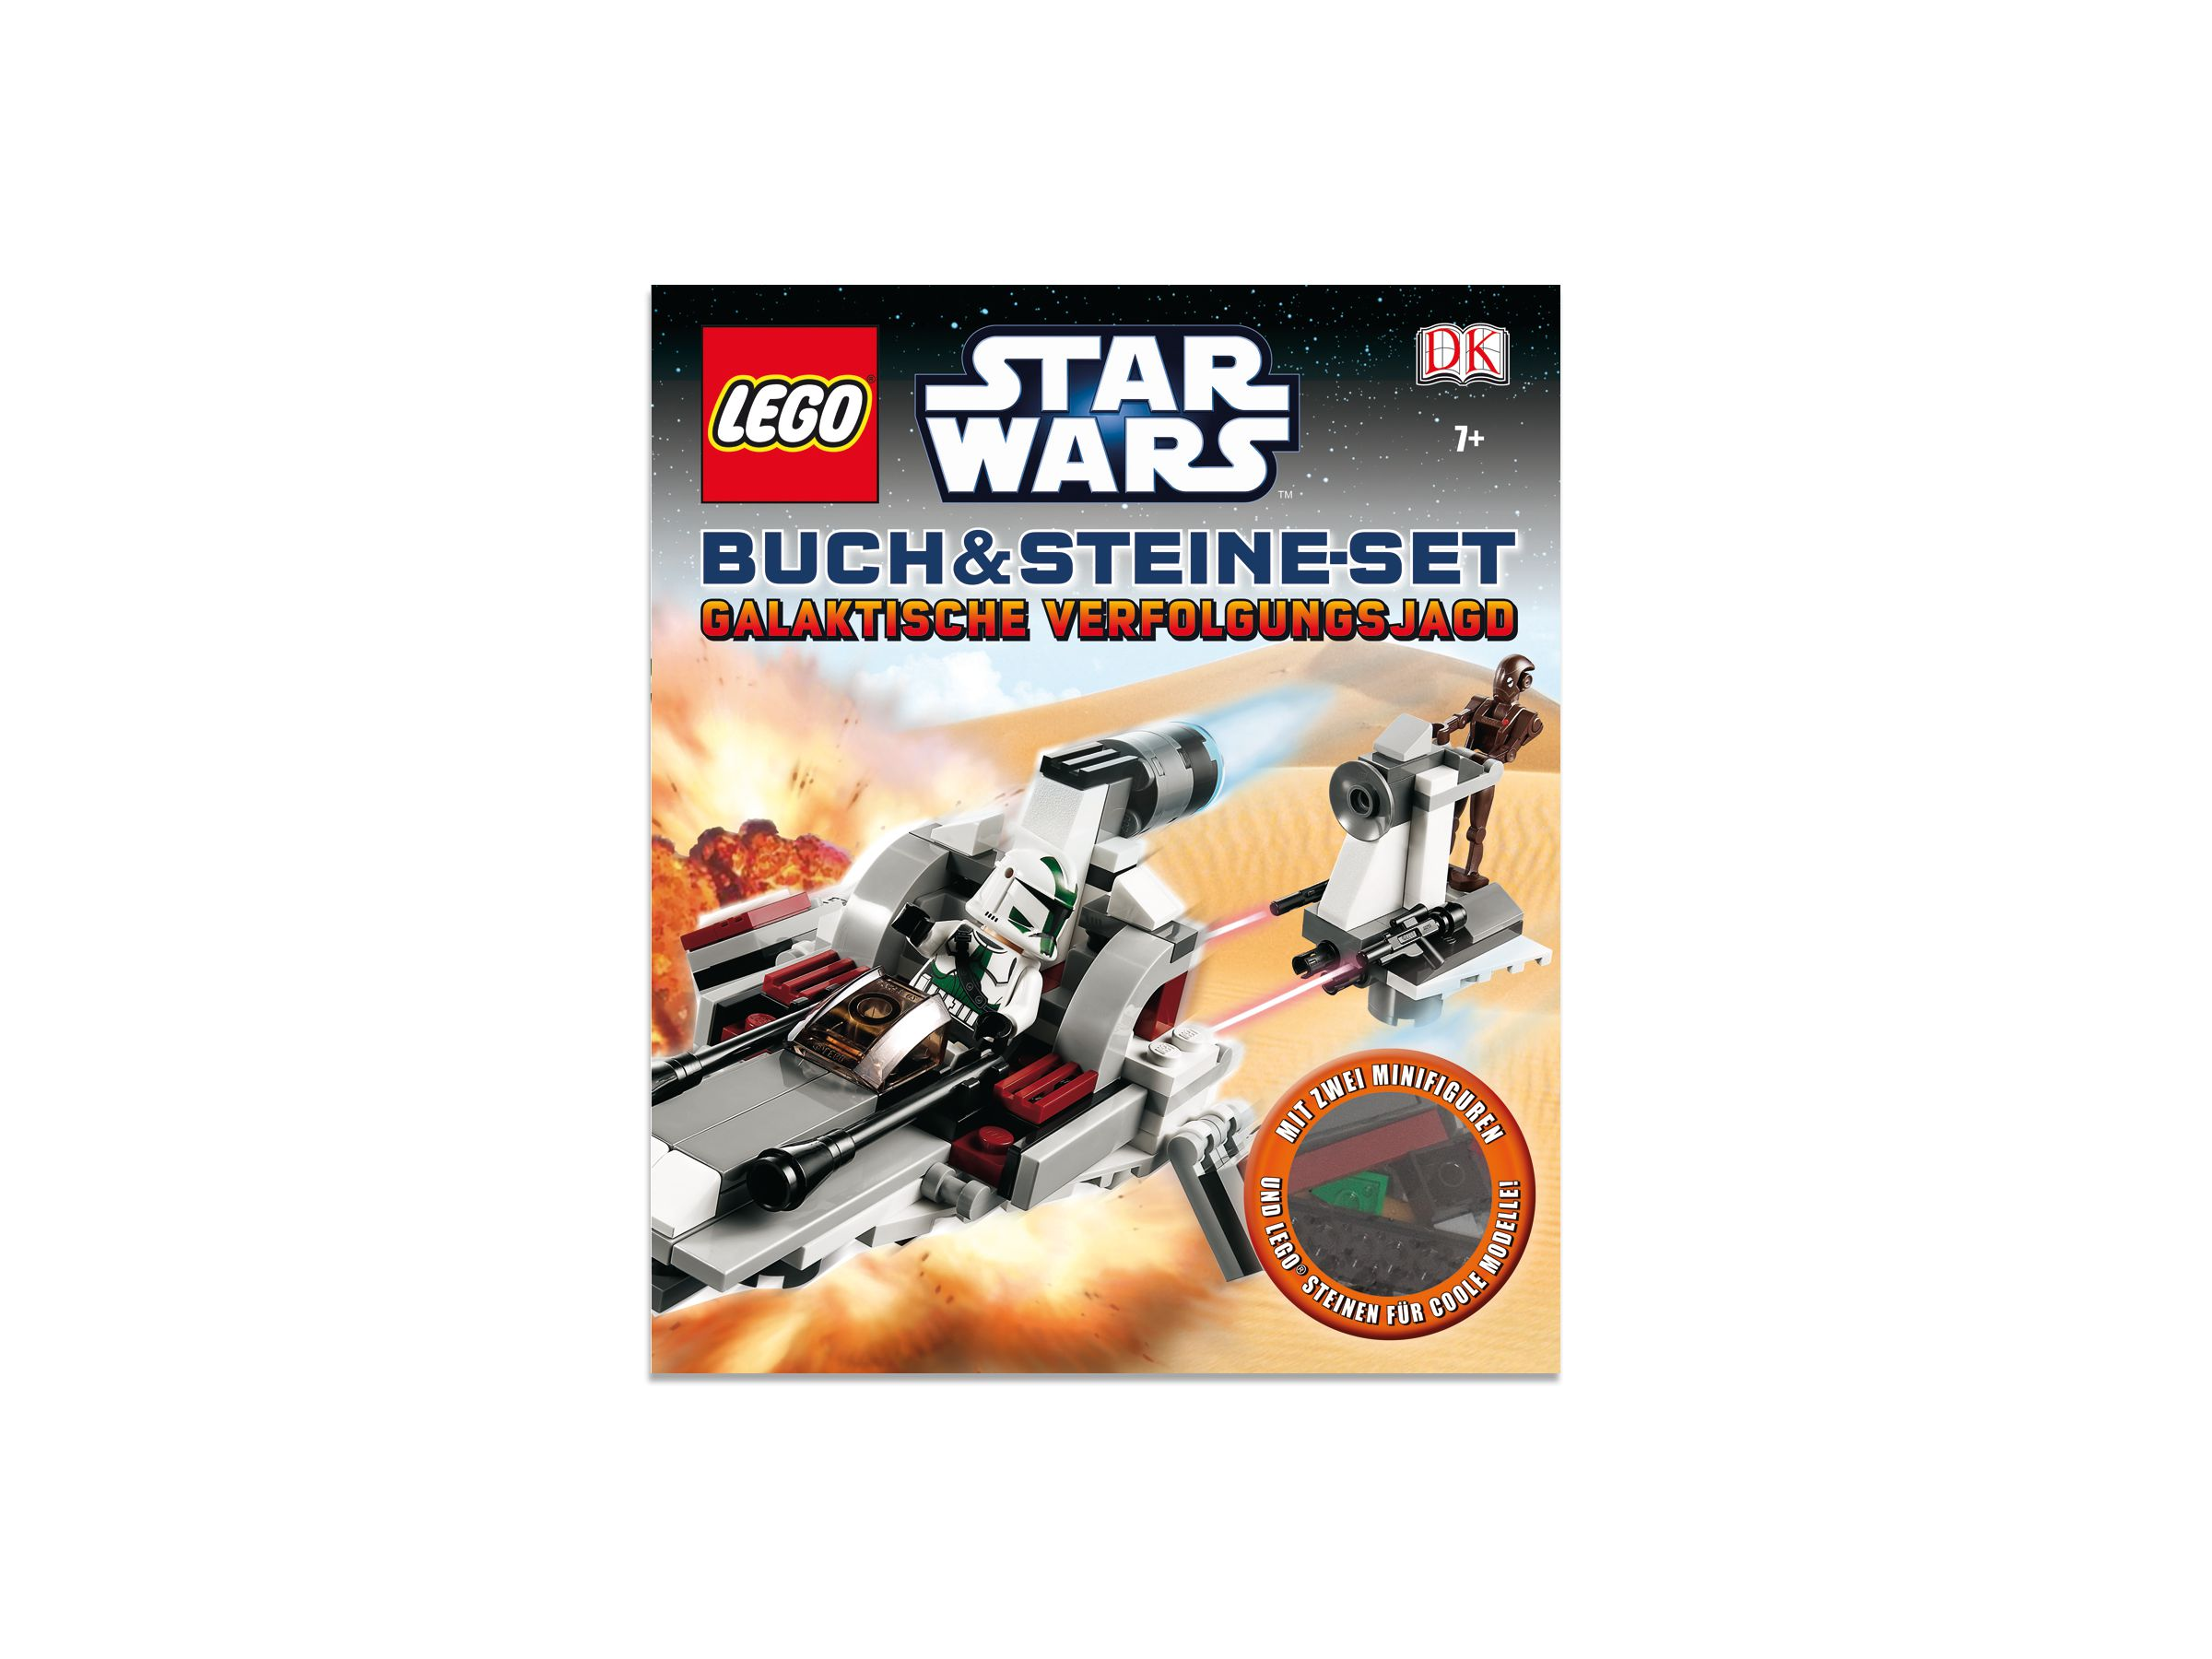 lego star wars brickmaster instructions